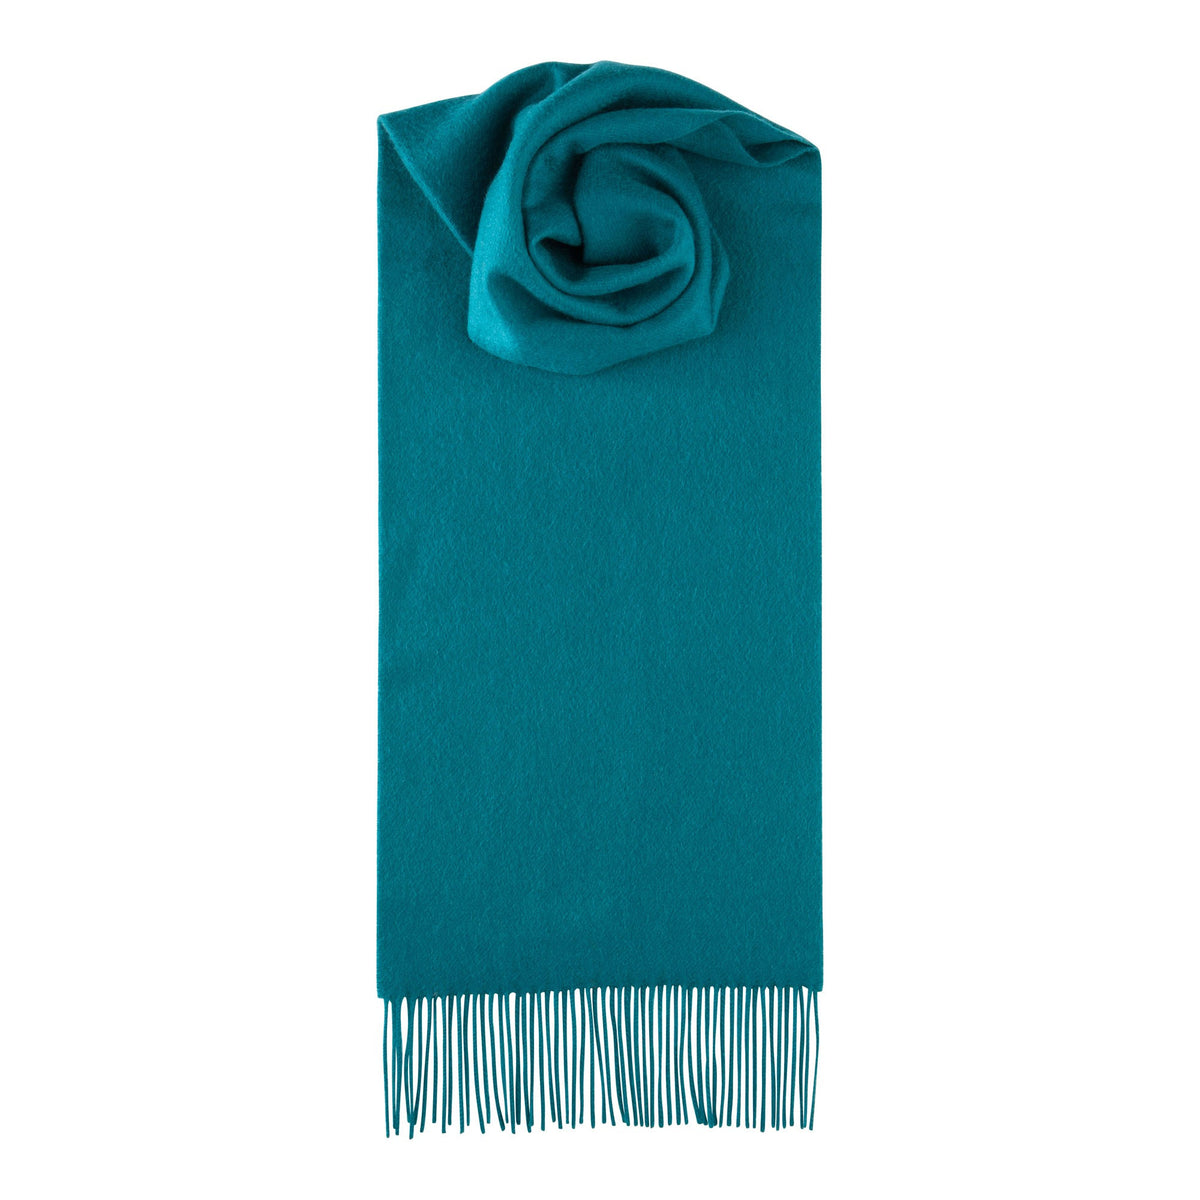 Johnsons of Elgin | Dark Jade Green Cashmere Scarf | buy at The Cashmere Choice | London